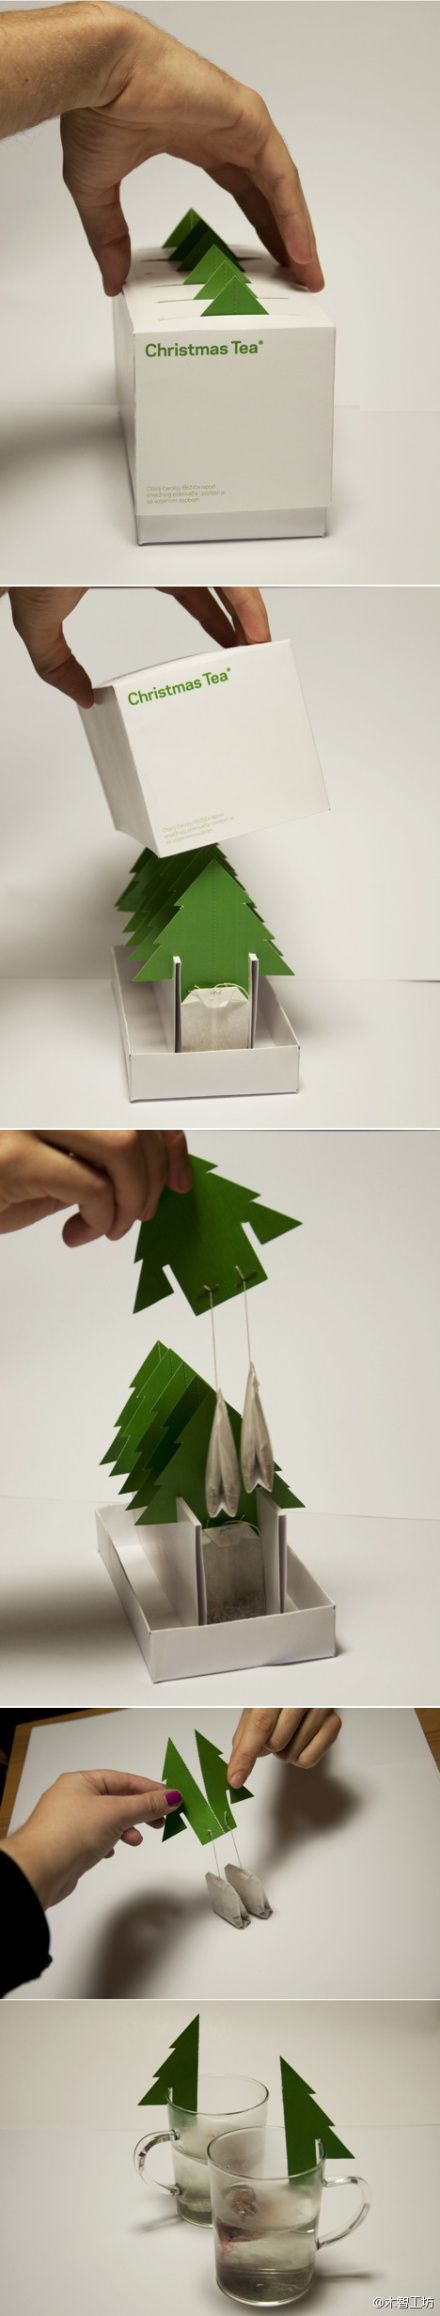 Christmas tree tea bags (Christmas Tea).  Wouldn't this be awesome to make?